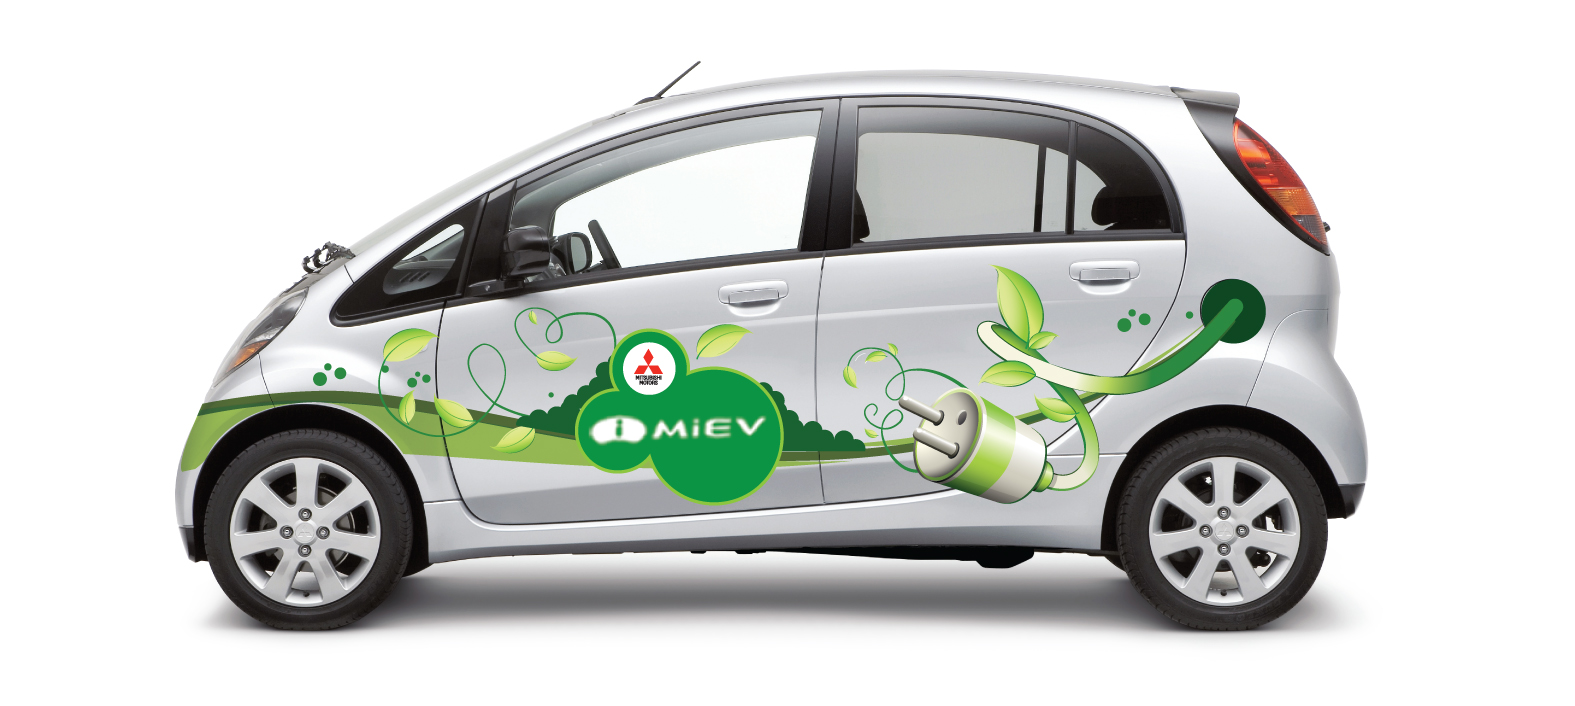 Design and branding for vehicle wraps for launch of the new Mitsubishi ...